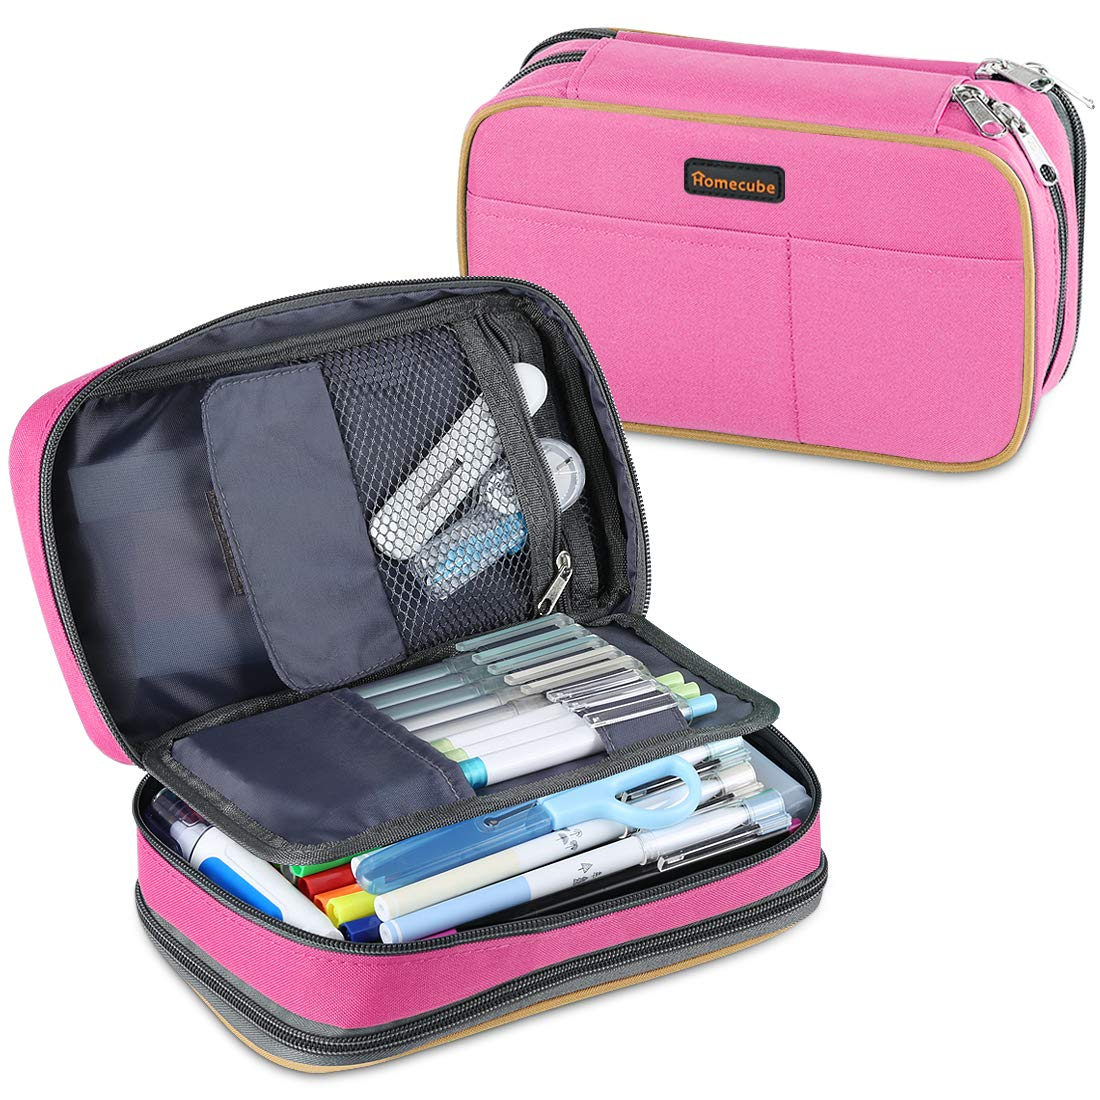 """Homecube Pencil Case Big Capacity Storage Pen Bag Makeup Pouch Durable Students Stationery Two Big Pockets With Double Zipper- 8.7x6x3.2""""- Rose Red"""